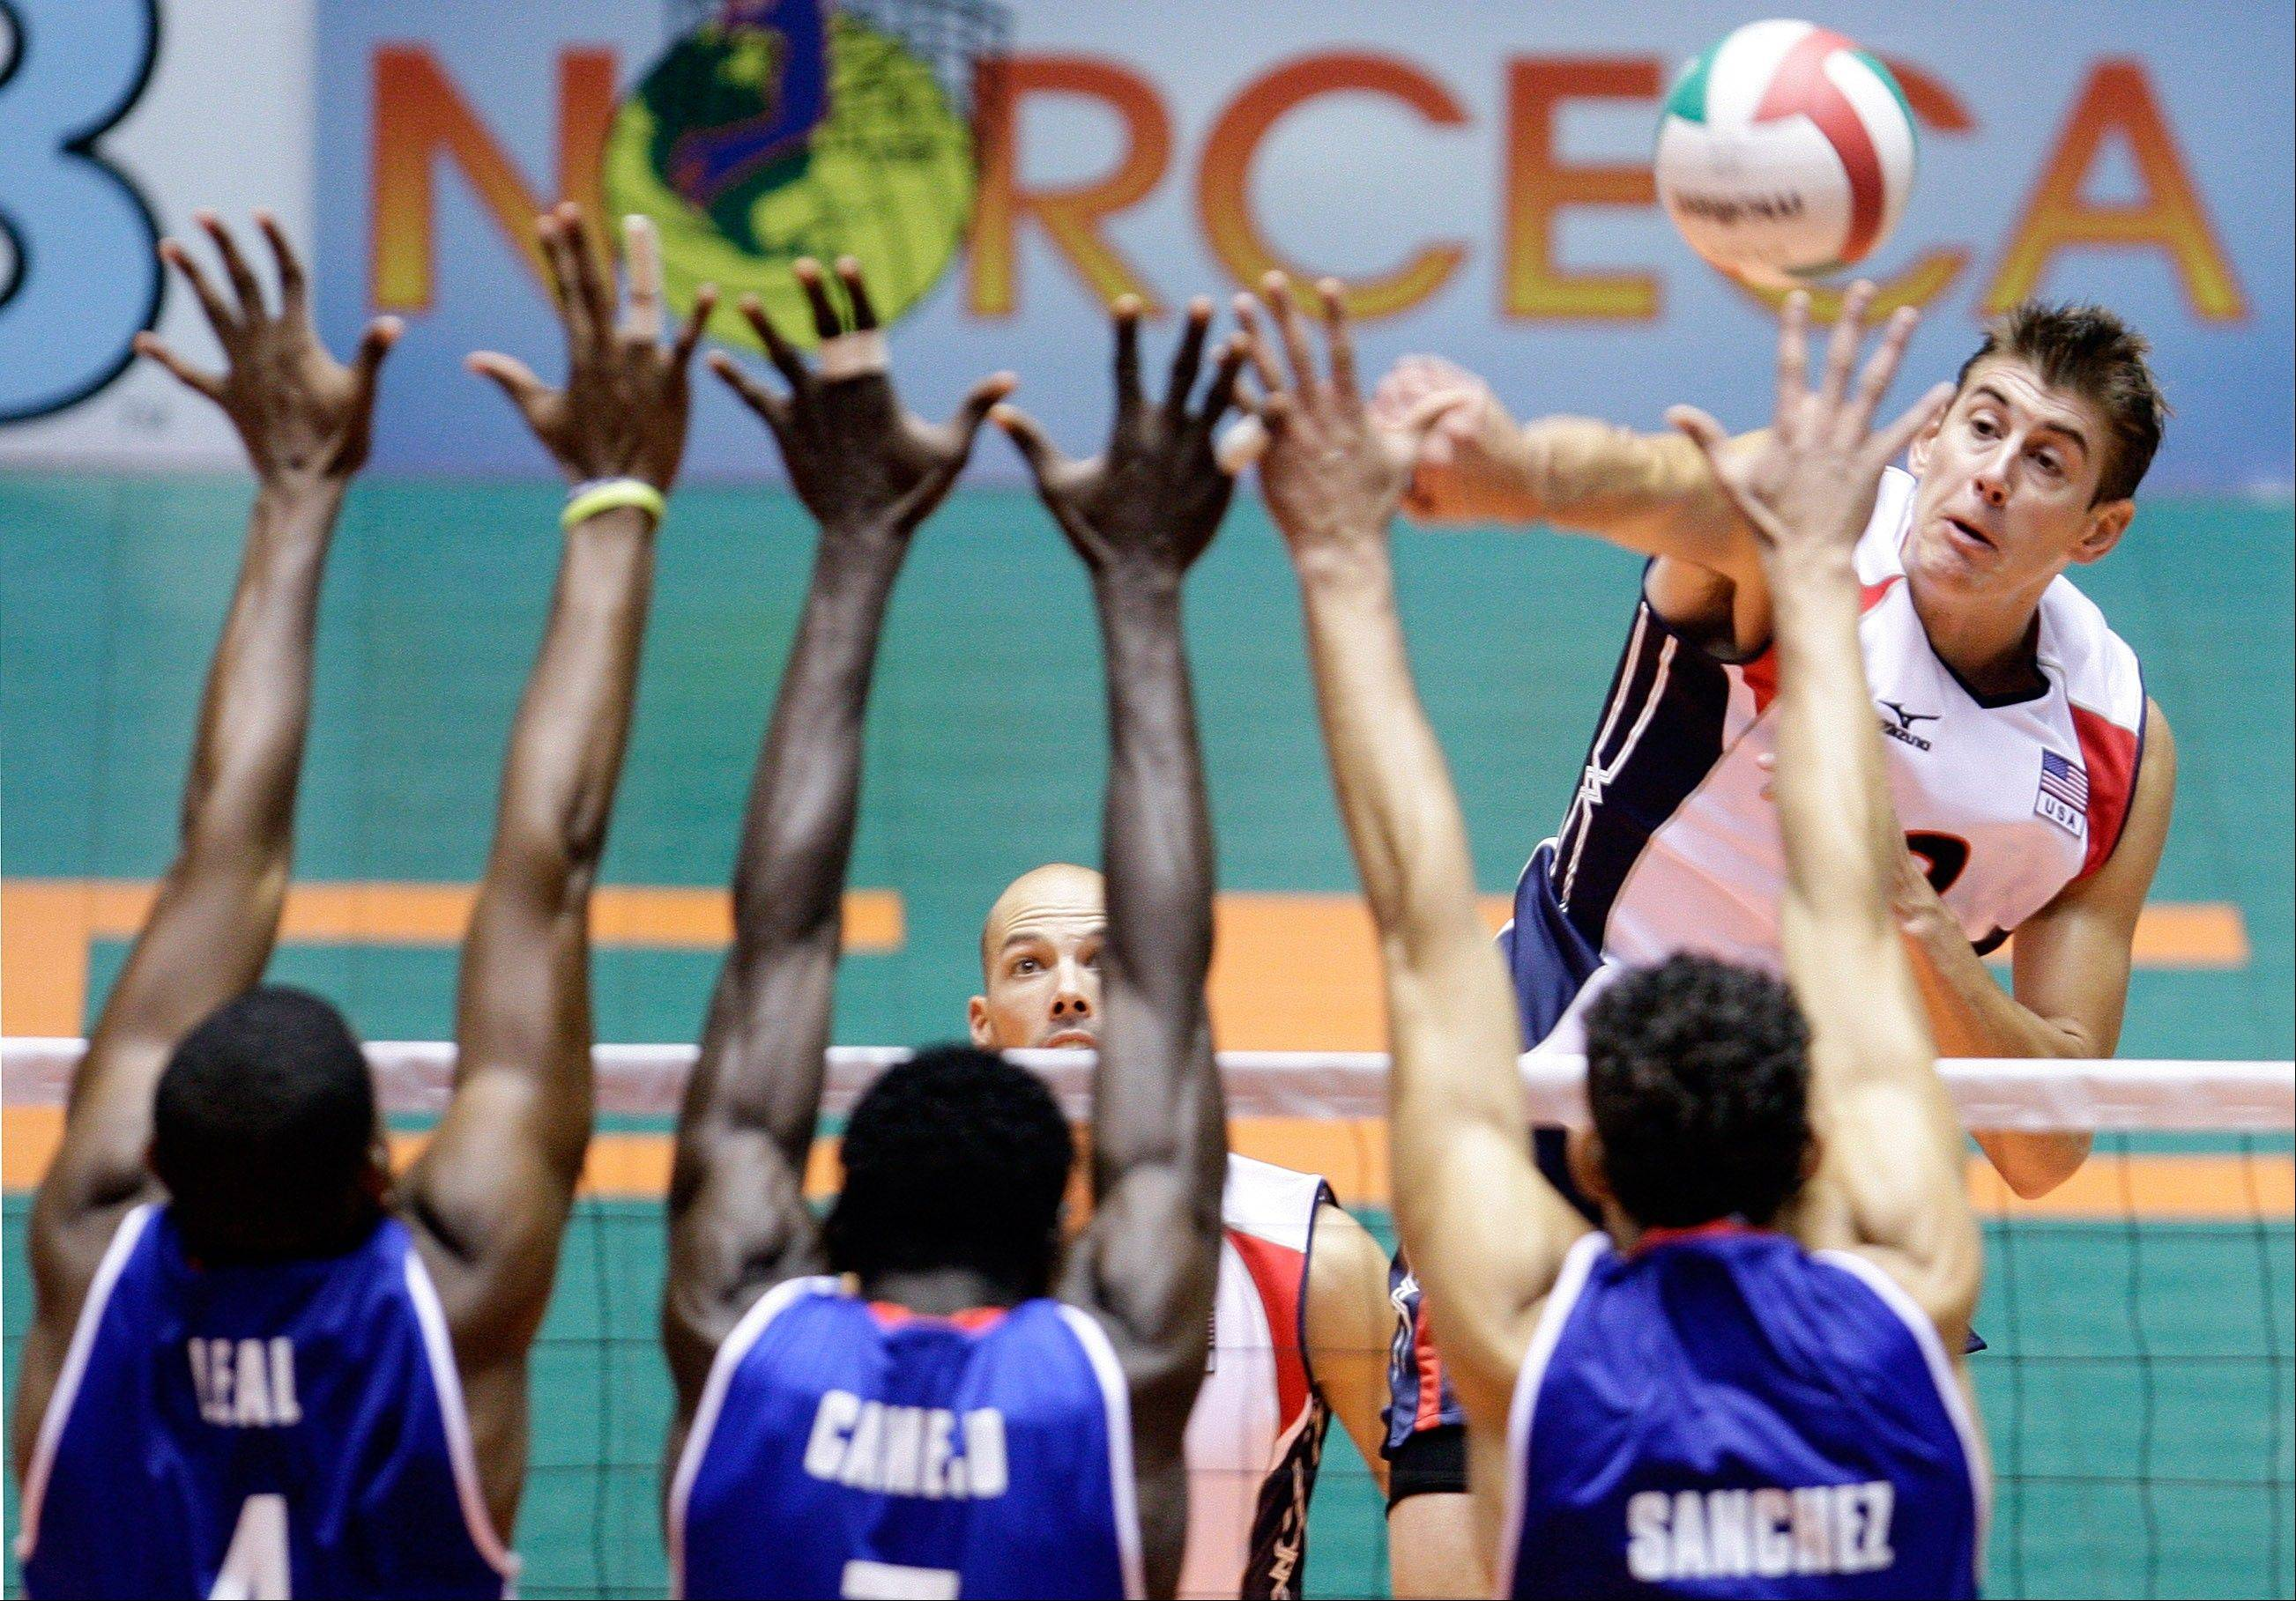 USA hitter Sean Rooney, a native of Wheaton, smashes a shot against Cuba during the gold medal game of the NORCECA Volleyball Championship in Bayamon, Puerto Rico.